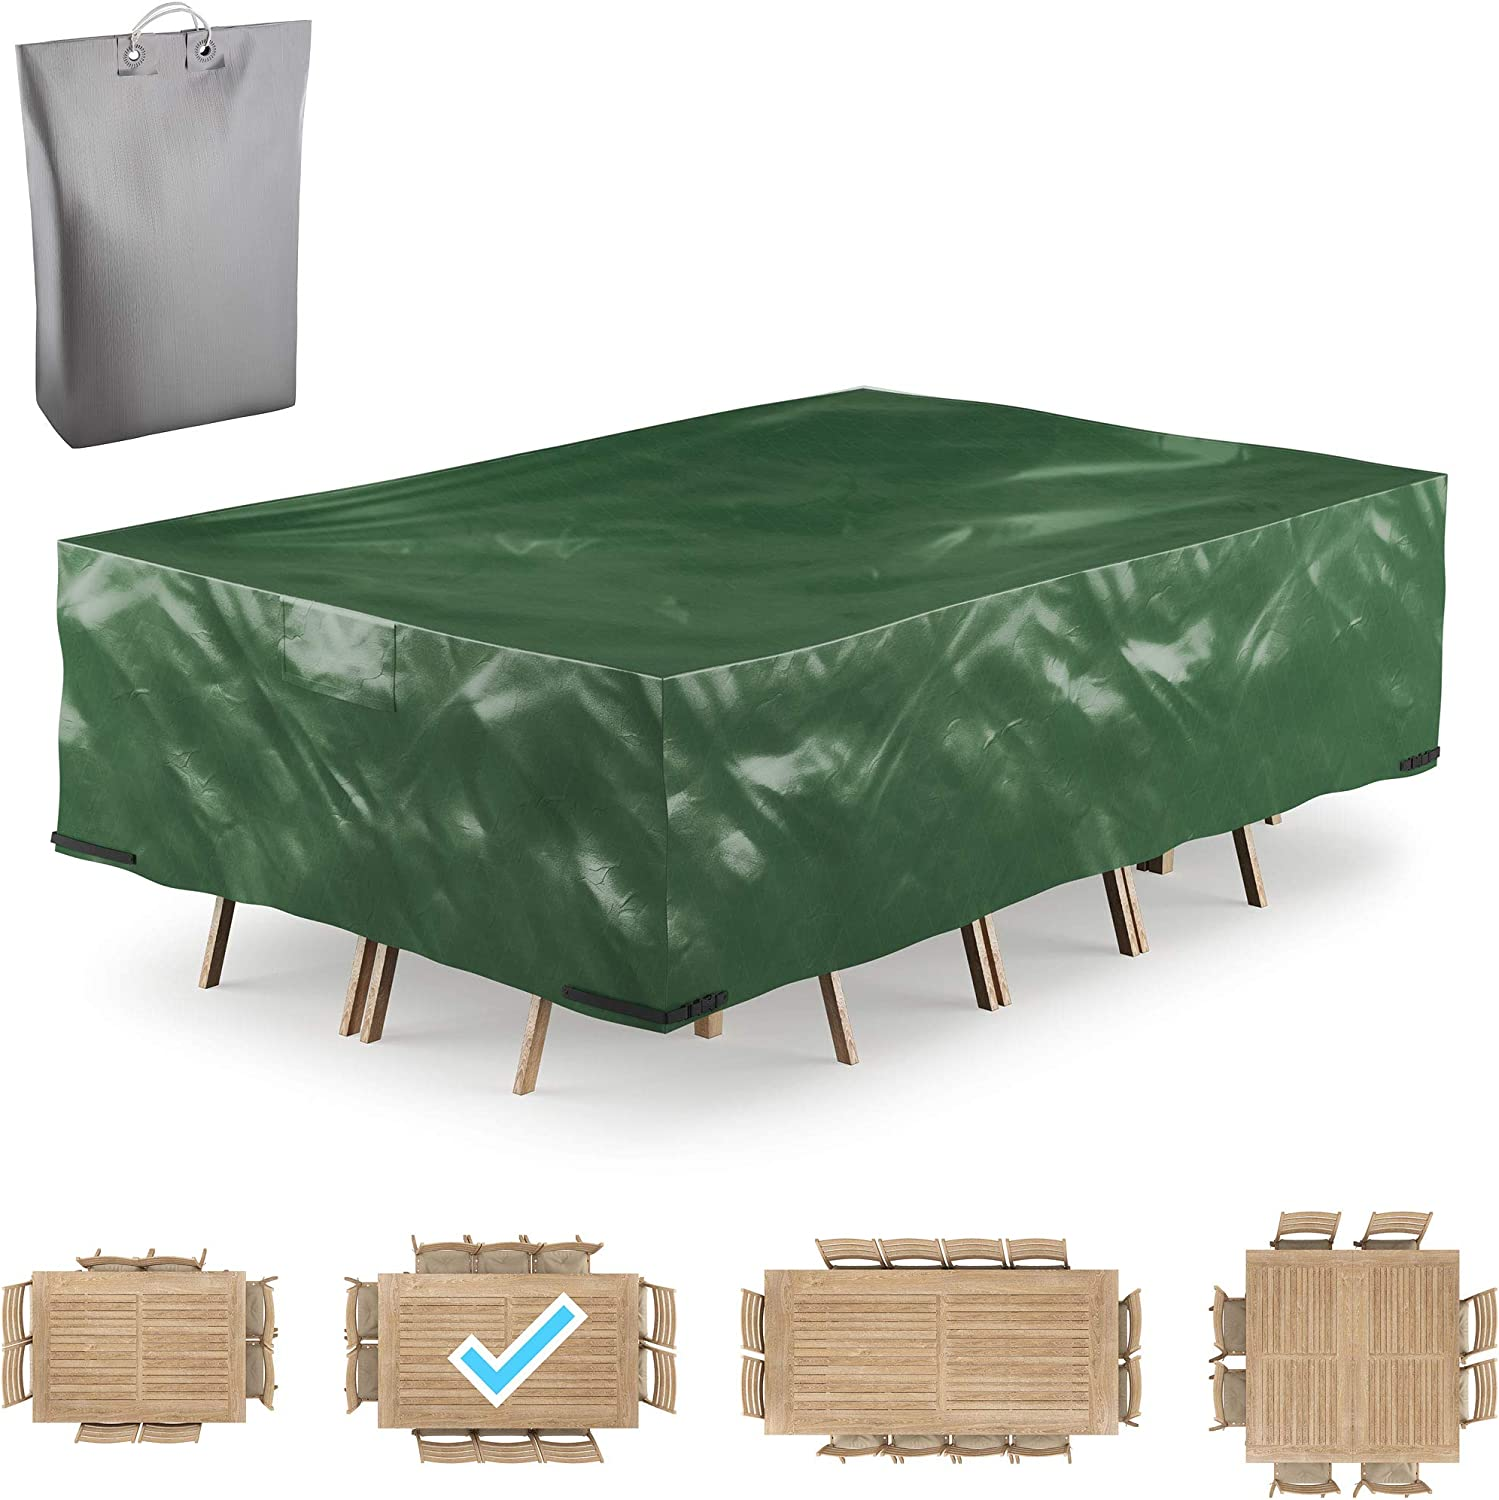 GARDSQUID Patio Furniture Cover Waterproof, Outdoor Table Cover - Tear-Resistant, Weather Resistant - Outdoor Table and Chairs, Sofa, Sectional Cover - Storage Bag Included (111